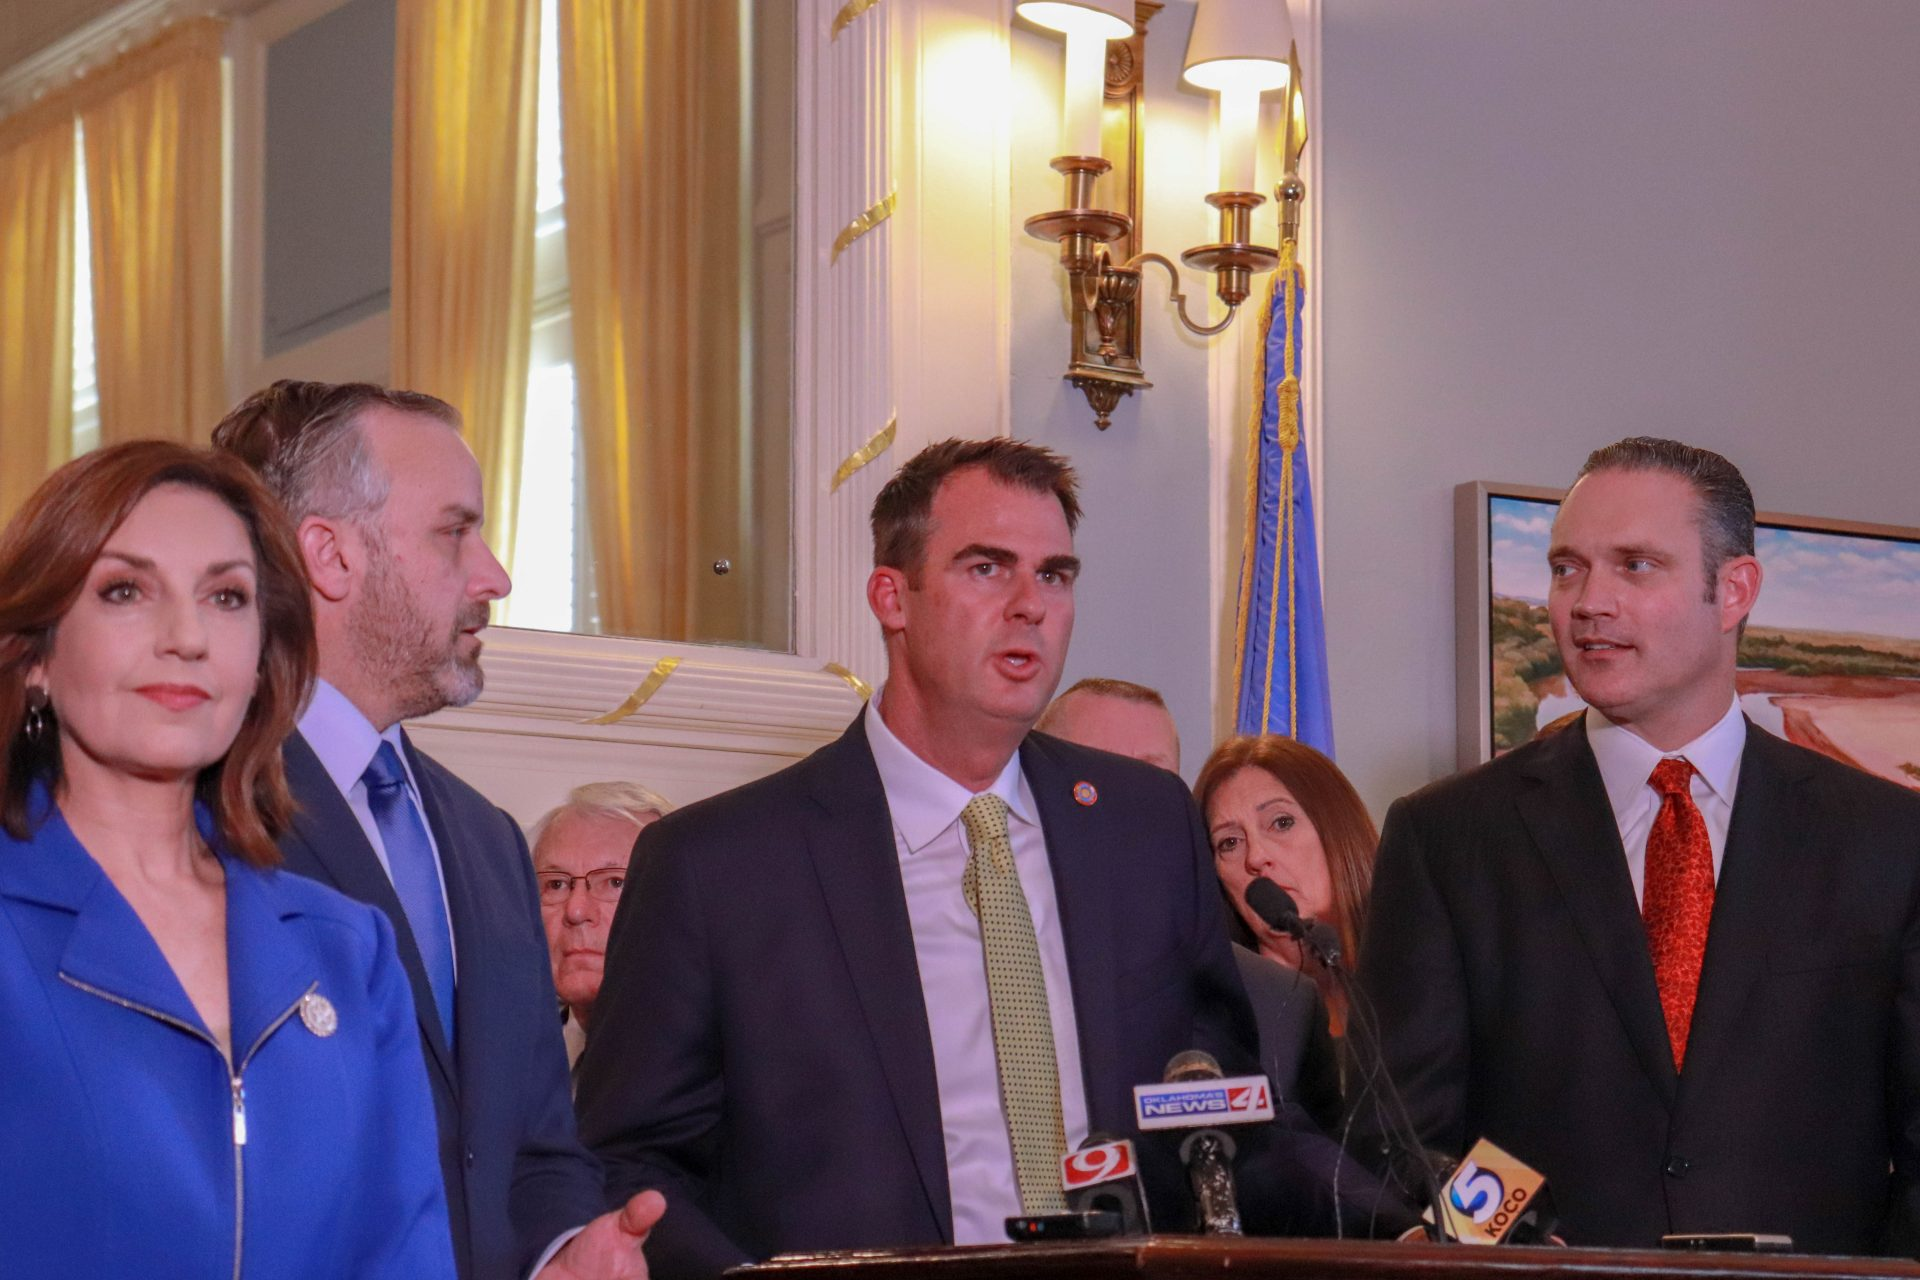 Gov. Kevin Stitt stands at a podium and announces a budget deal while flanked by legislative leaders.